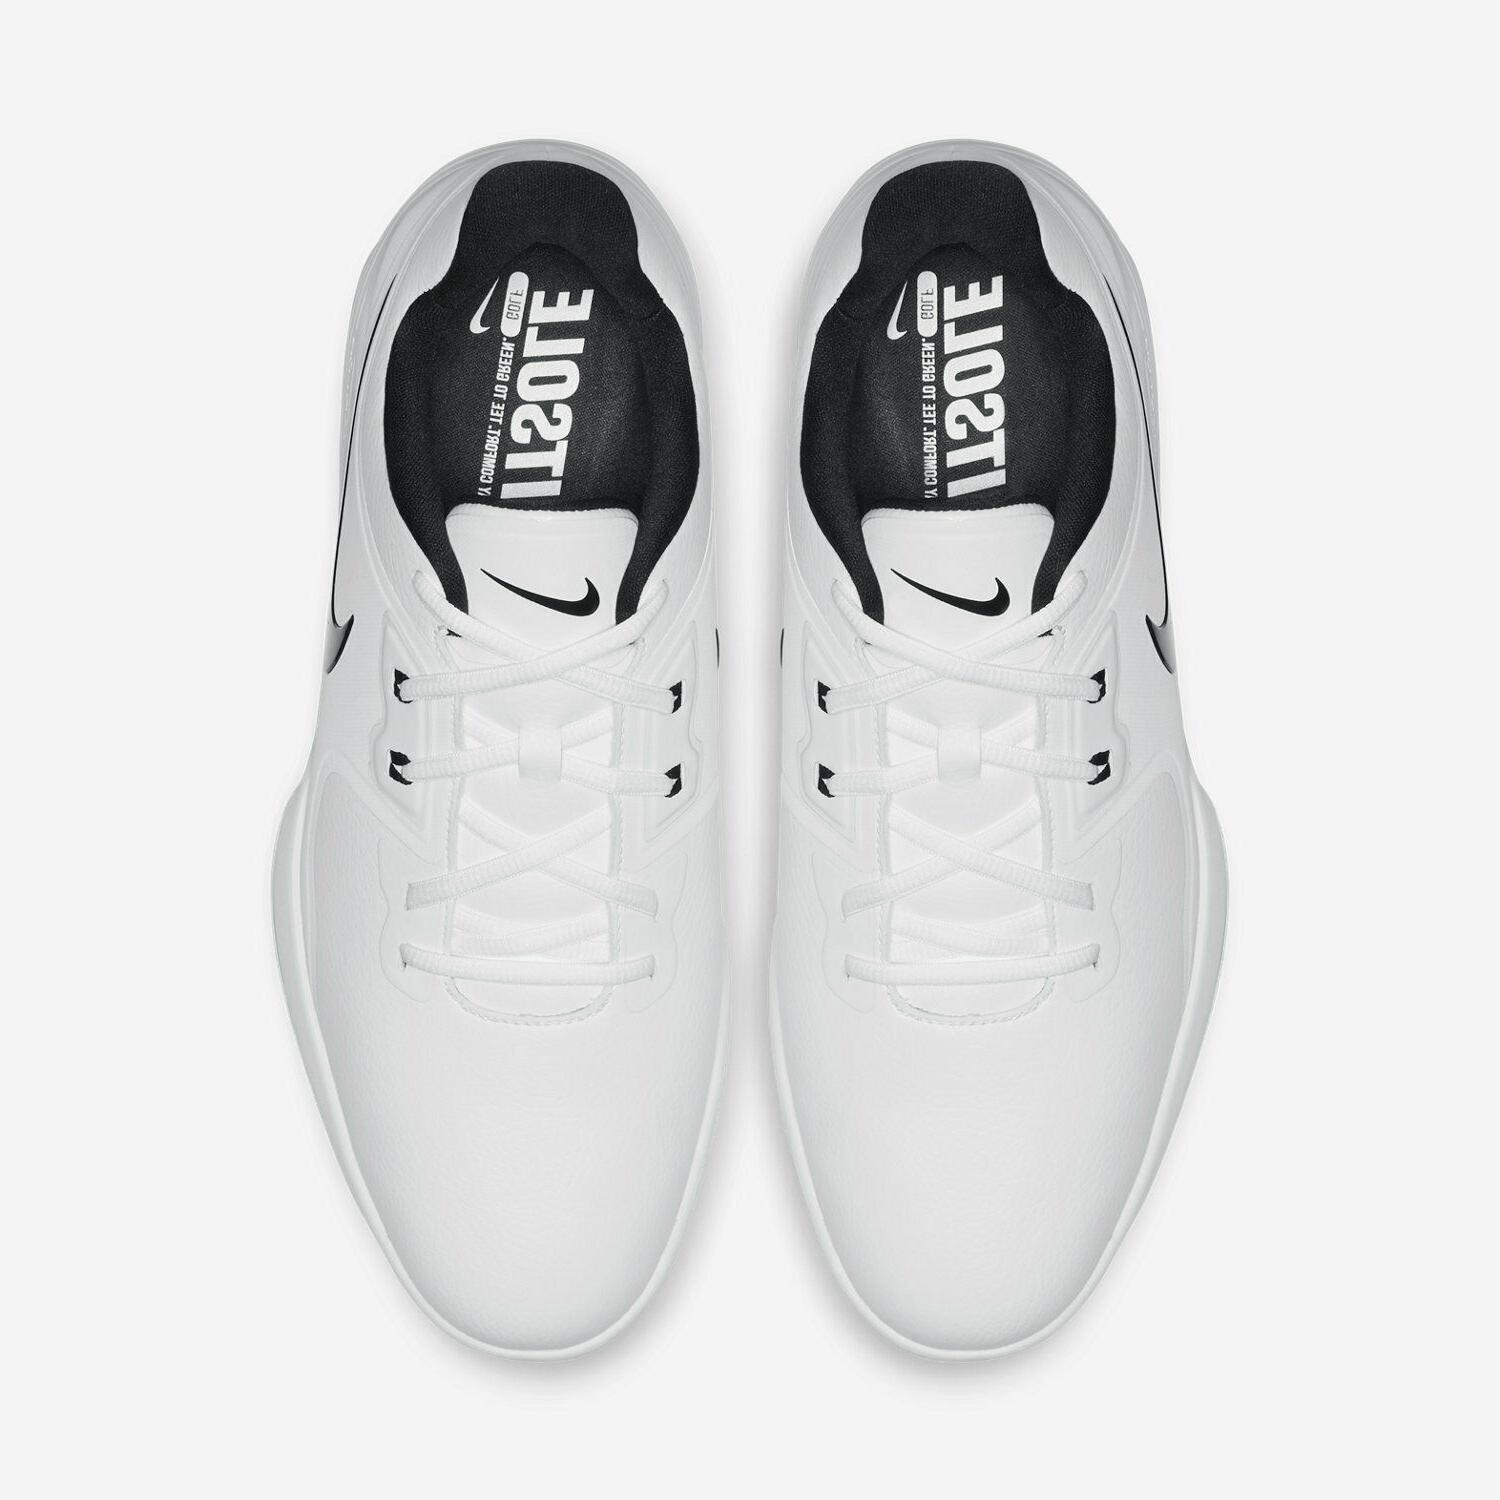 Nike Vapor Pro Shoes 8-13 White AQ2197-101